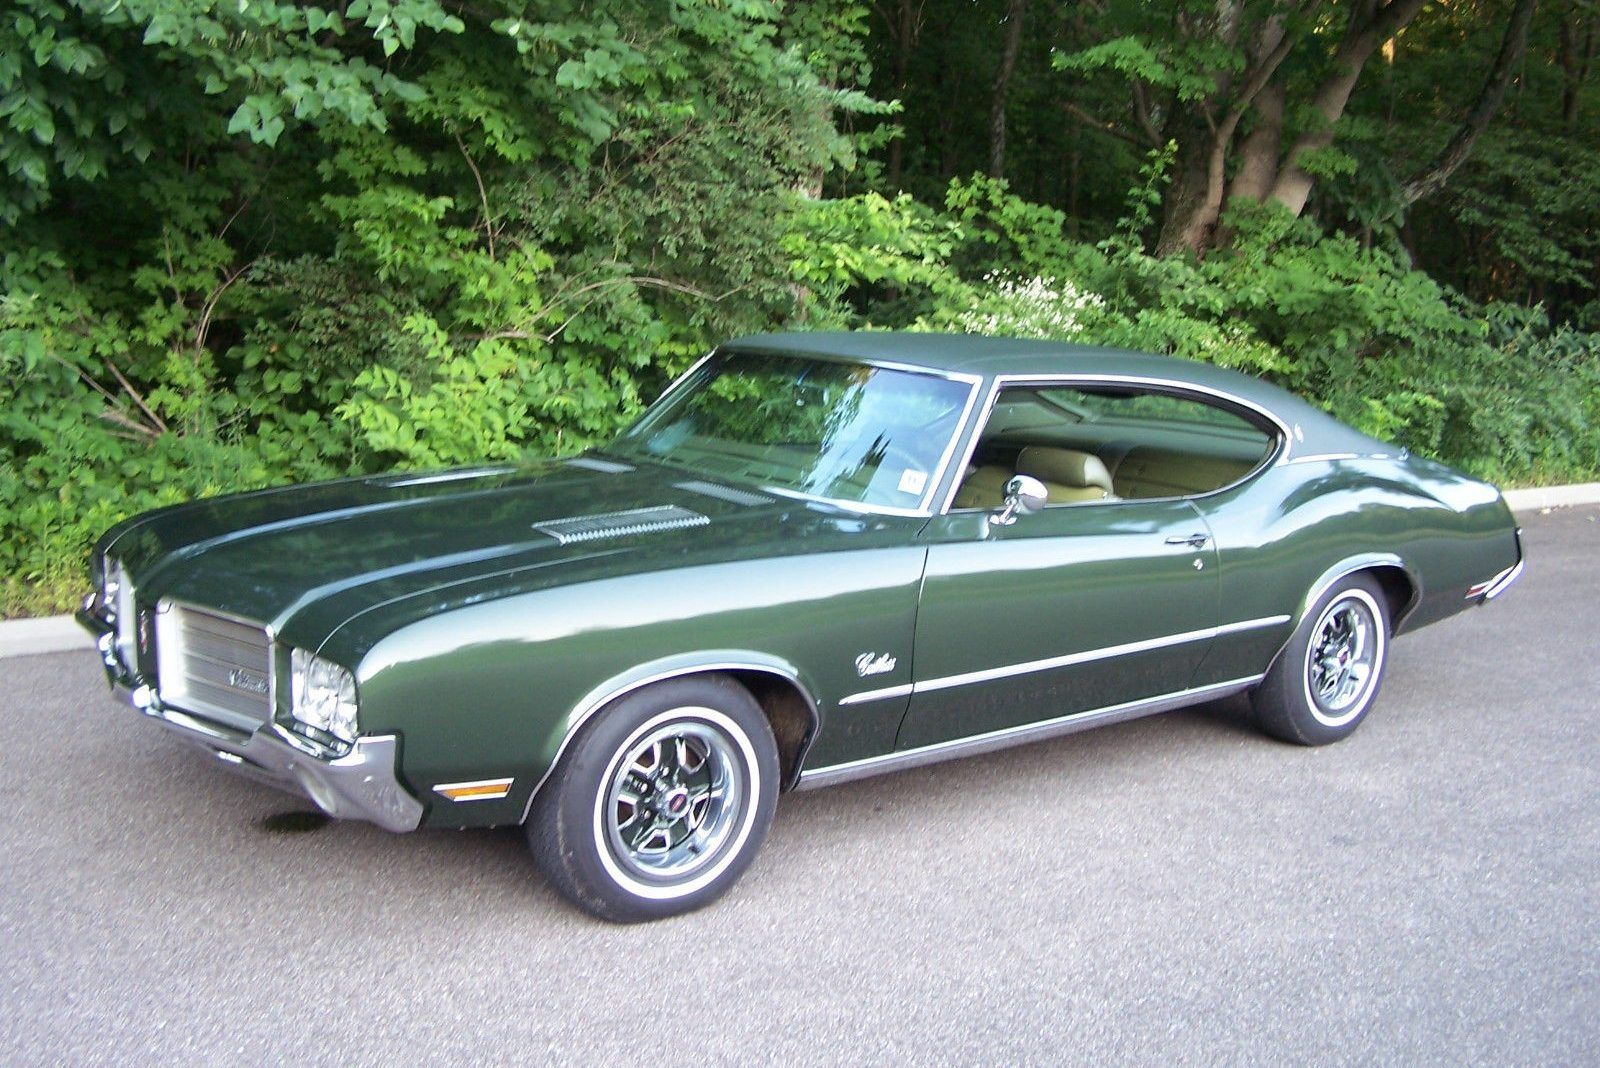 Certified Original! 34,290 Mile 1971 Oldsmobile Cutlass S - http://barnfinds.com/certified-original-34290-mile-1971-oldsmobile-cutlass-s/